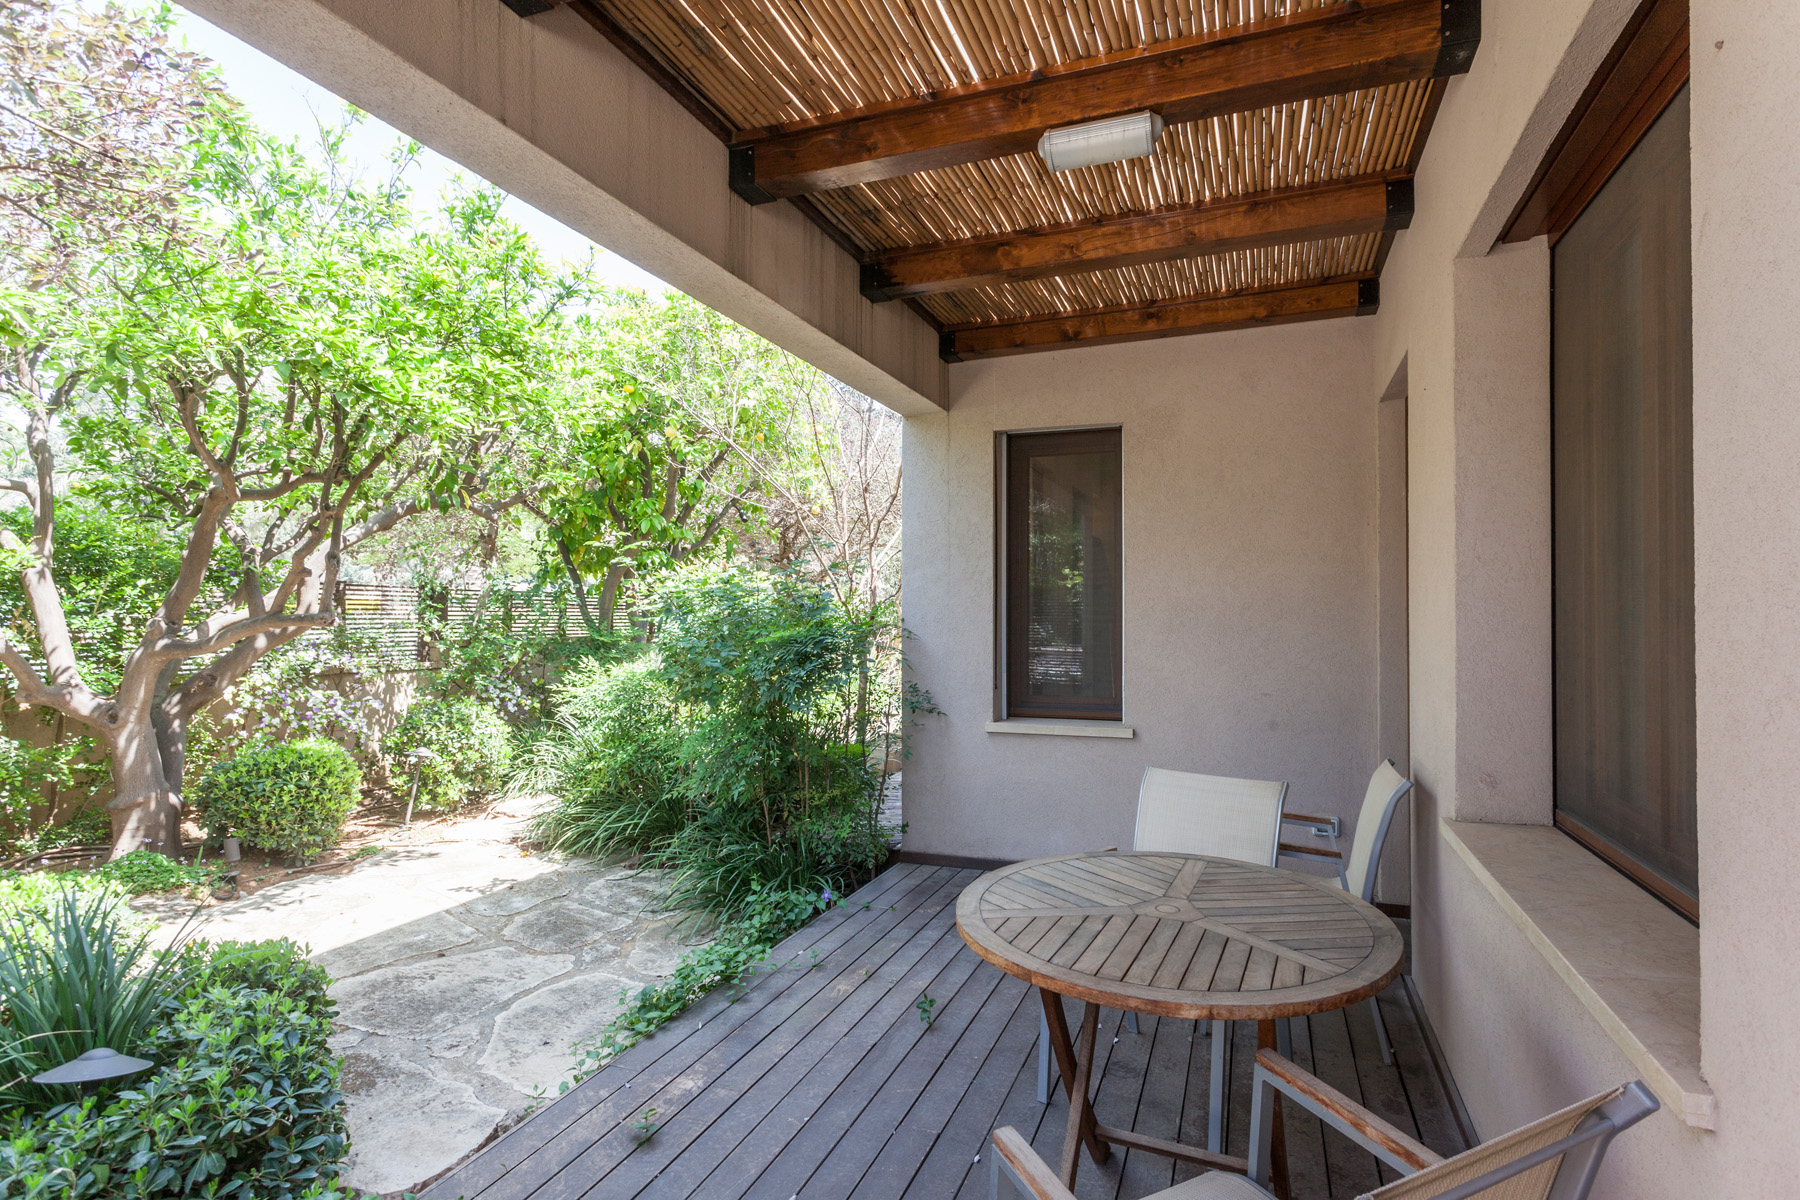 Additional photo for property listing at Bright and Elegant Private house in Nes Ziona Nes Ziona, 以色列 以色列